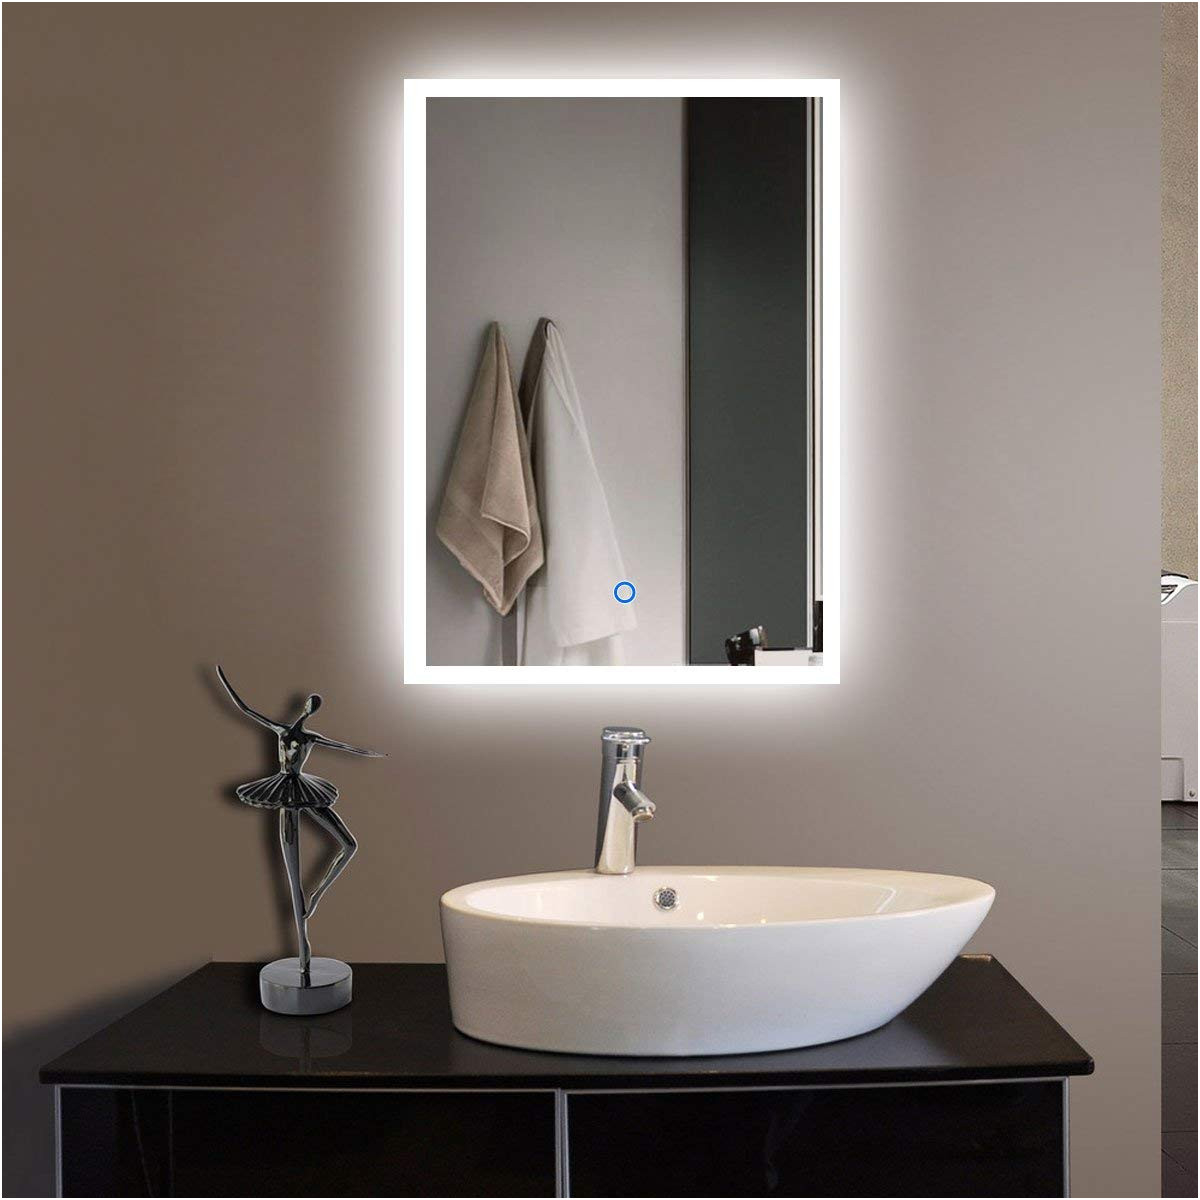 42 Inch Wide Bathroom Mirror Awesome Amazon 55 X 36 In Horizontal Led Bathroom Silvered Mirror with